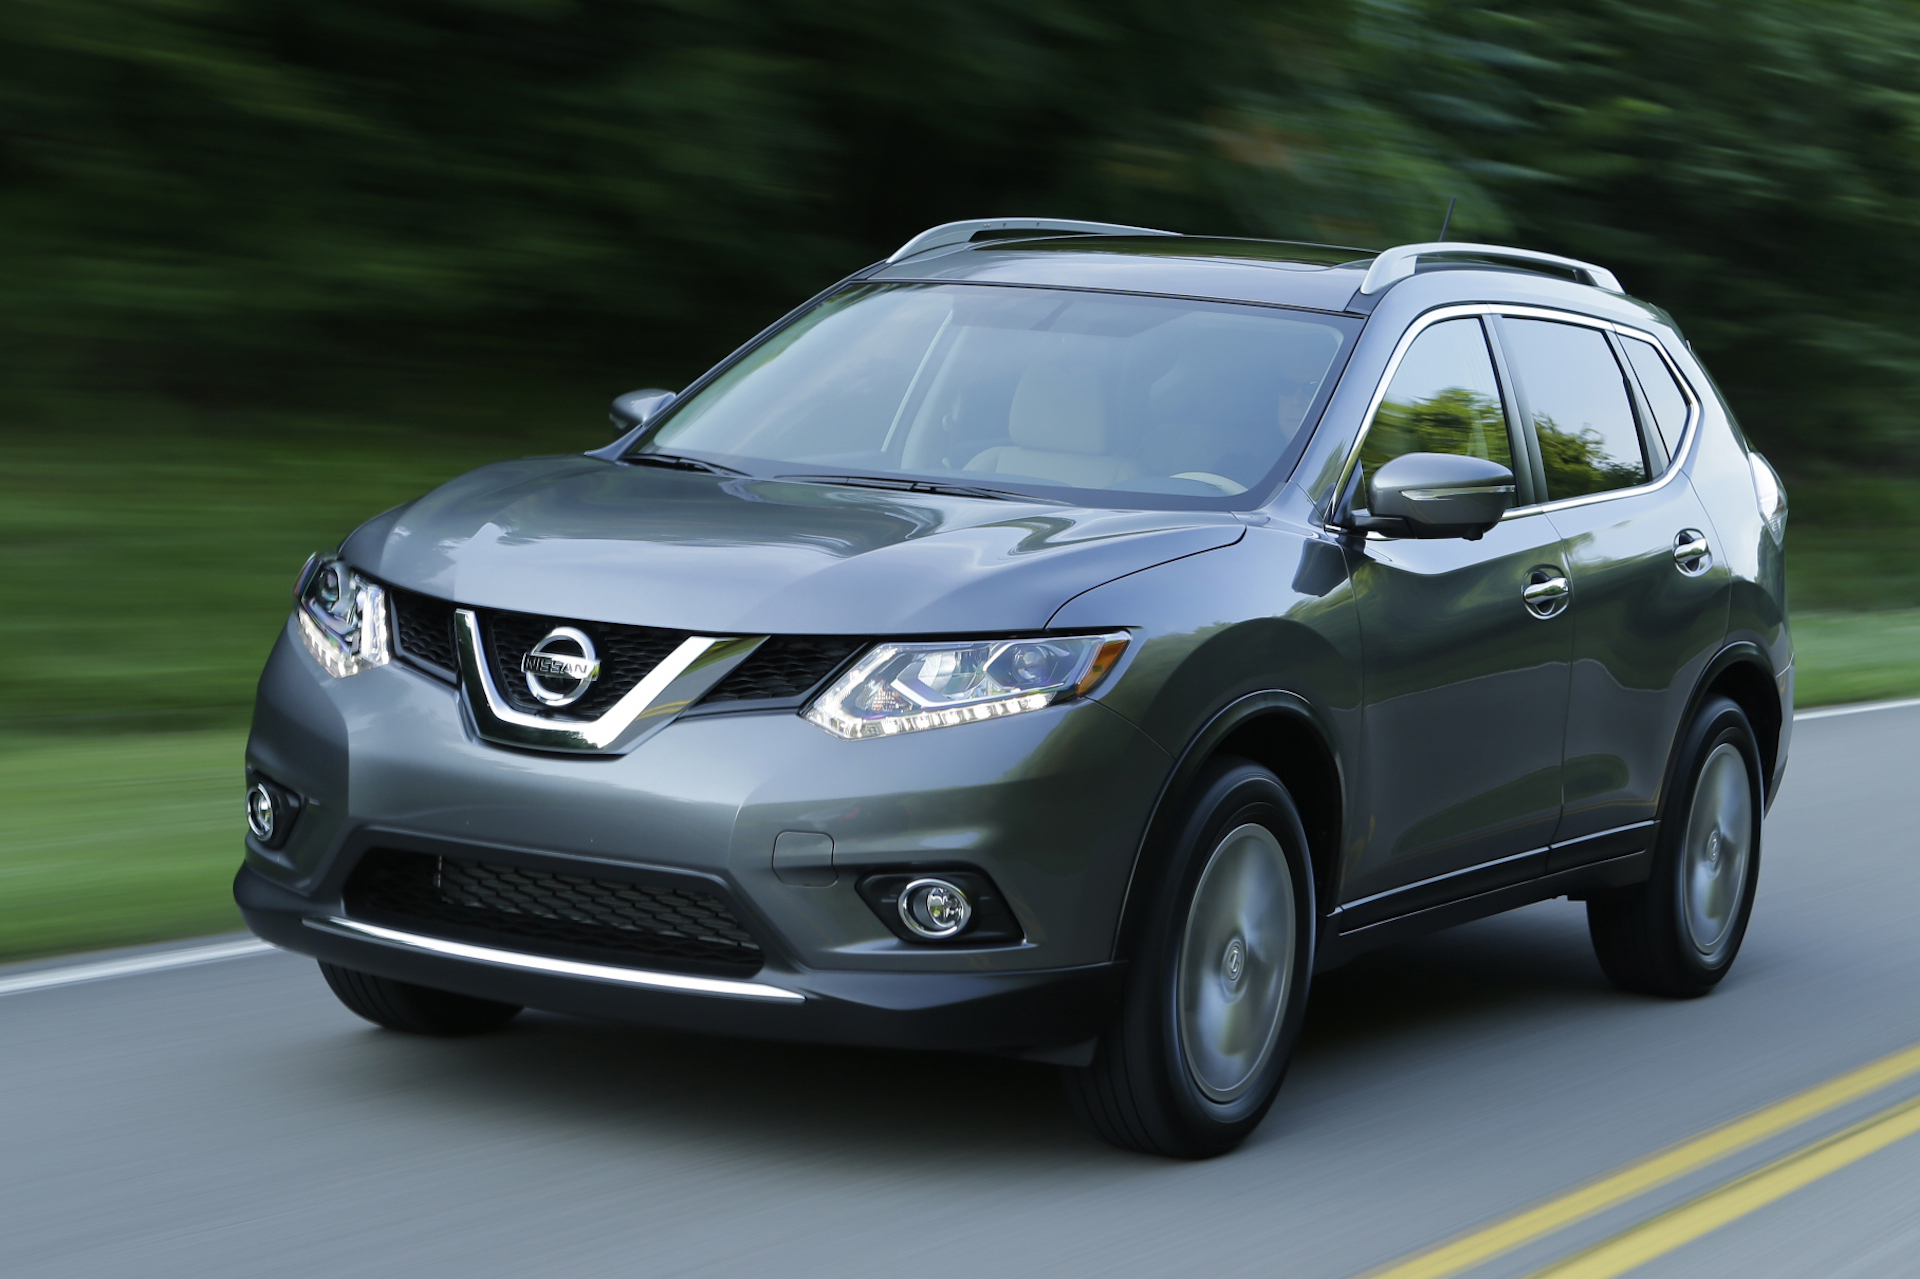 new and used nissan rogue prices photos reviews specs the car connection. Black Bedroom Furniture Sets. Home Design Ideas